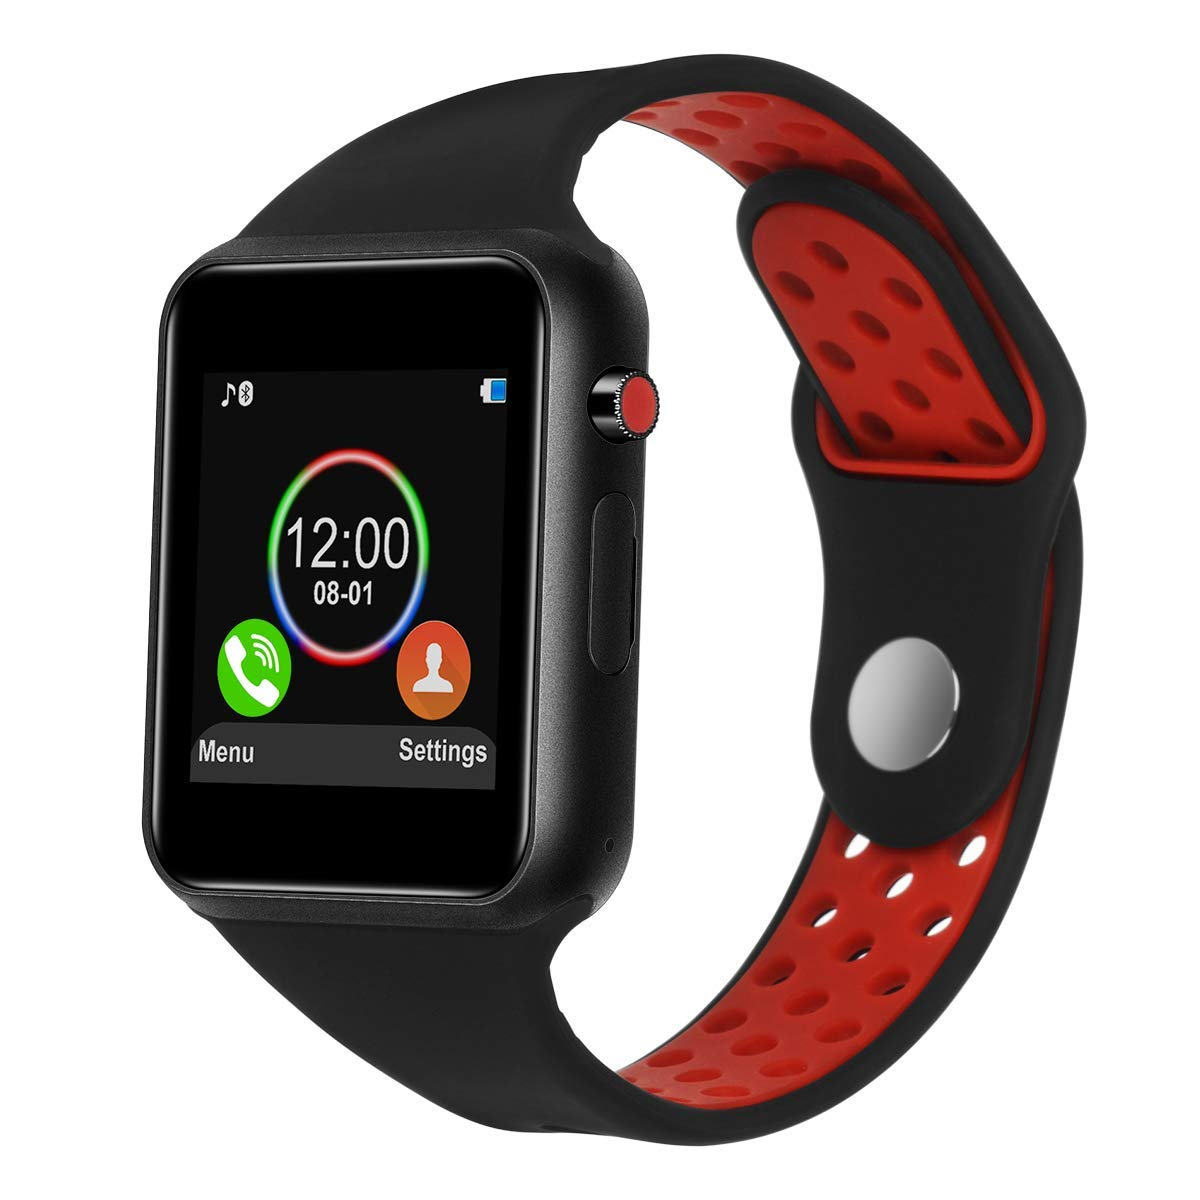 Smart Watches for Android Phones,IOQSOF Touchscreen Bluetooth Smart Watch with Camera,Android Smartwatch,Waterproof Smart Watches Compatible Samsung iOS iPhone X 8 7 6 6S Plus 5 Men Women Include TF